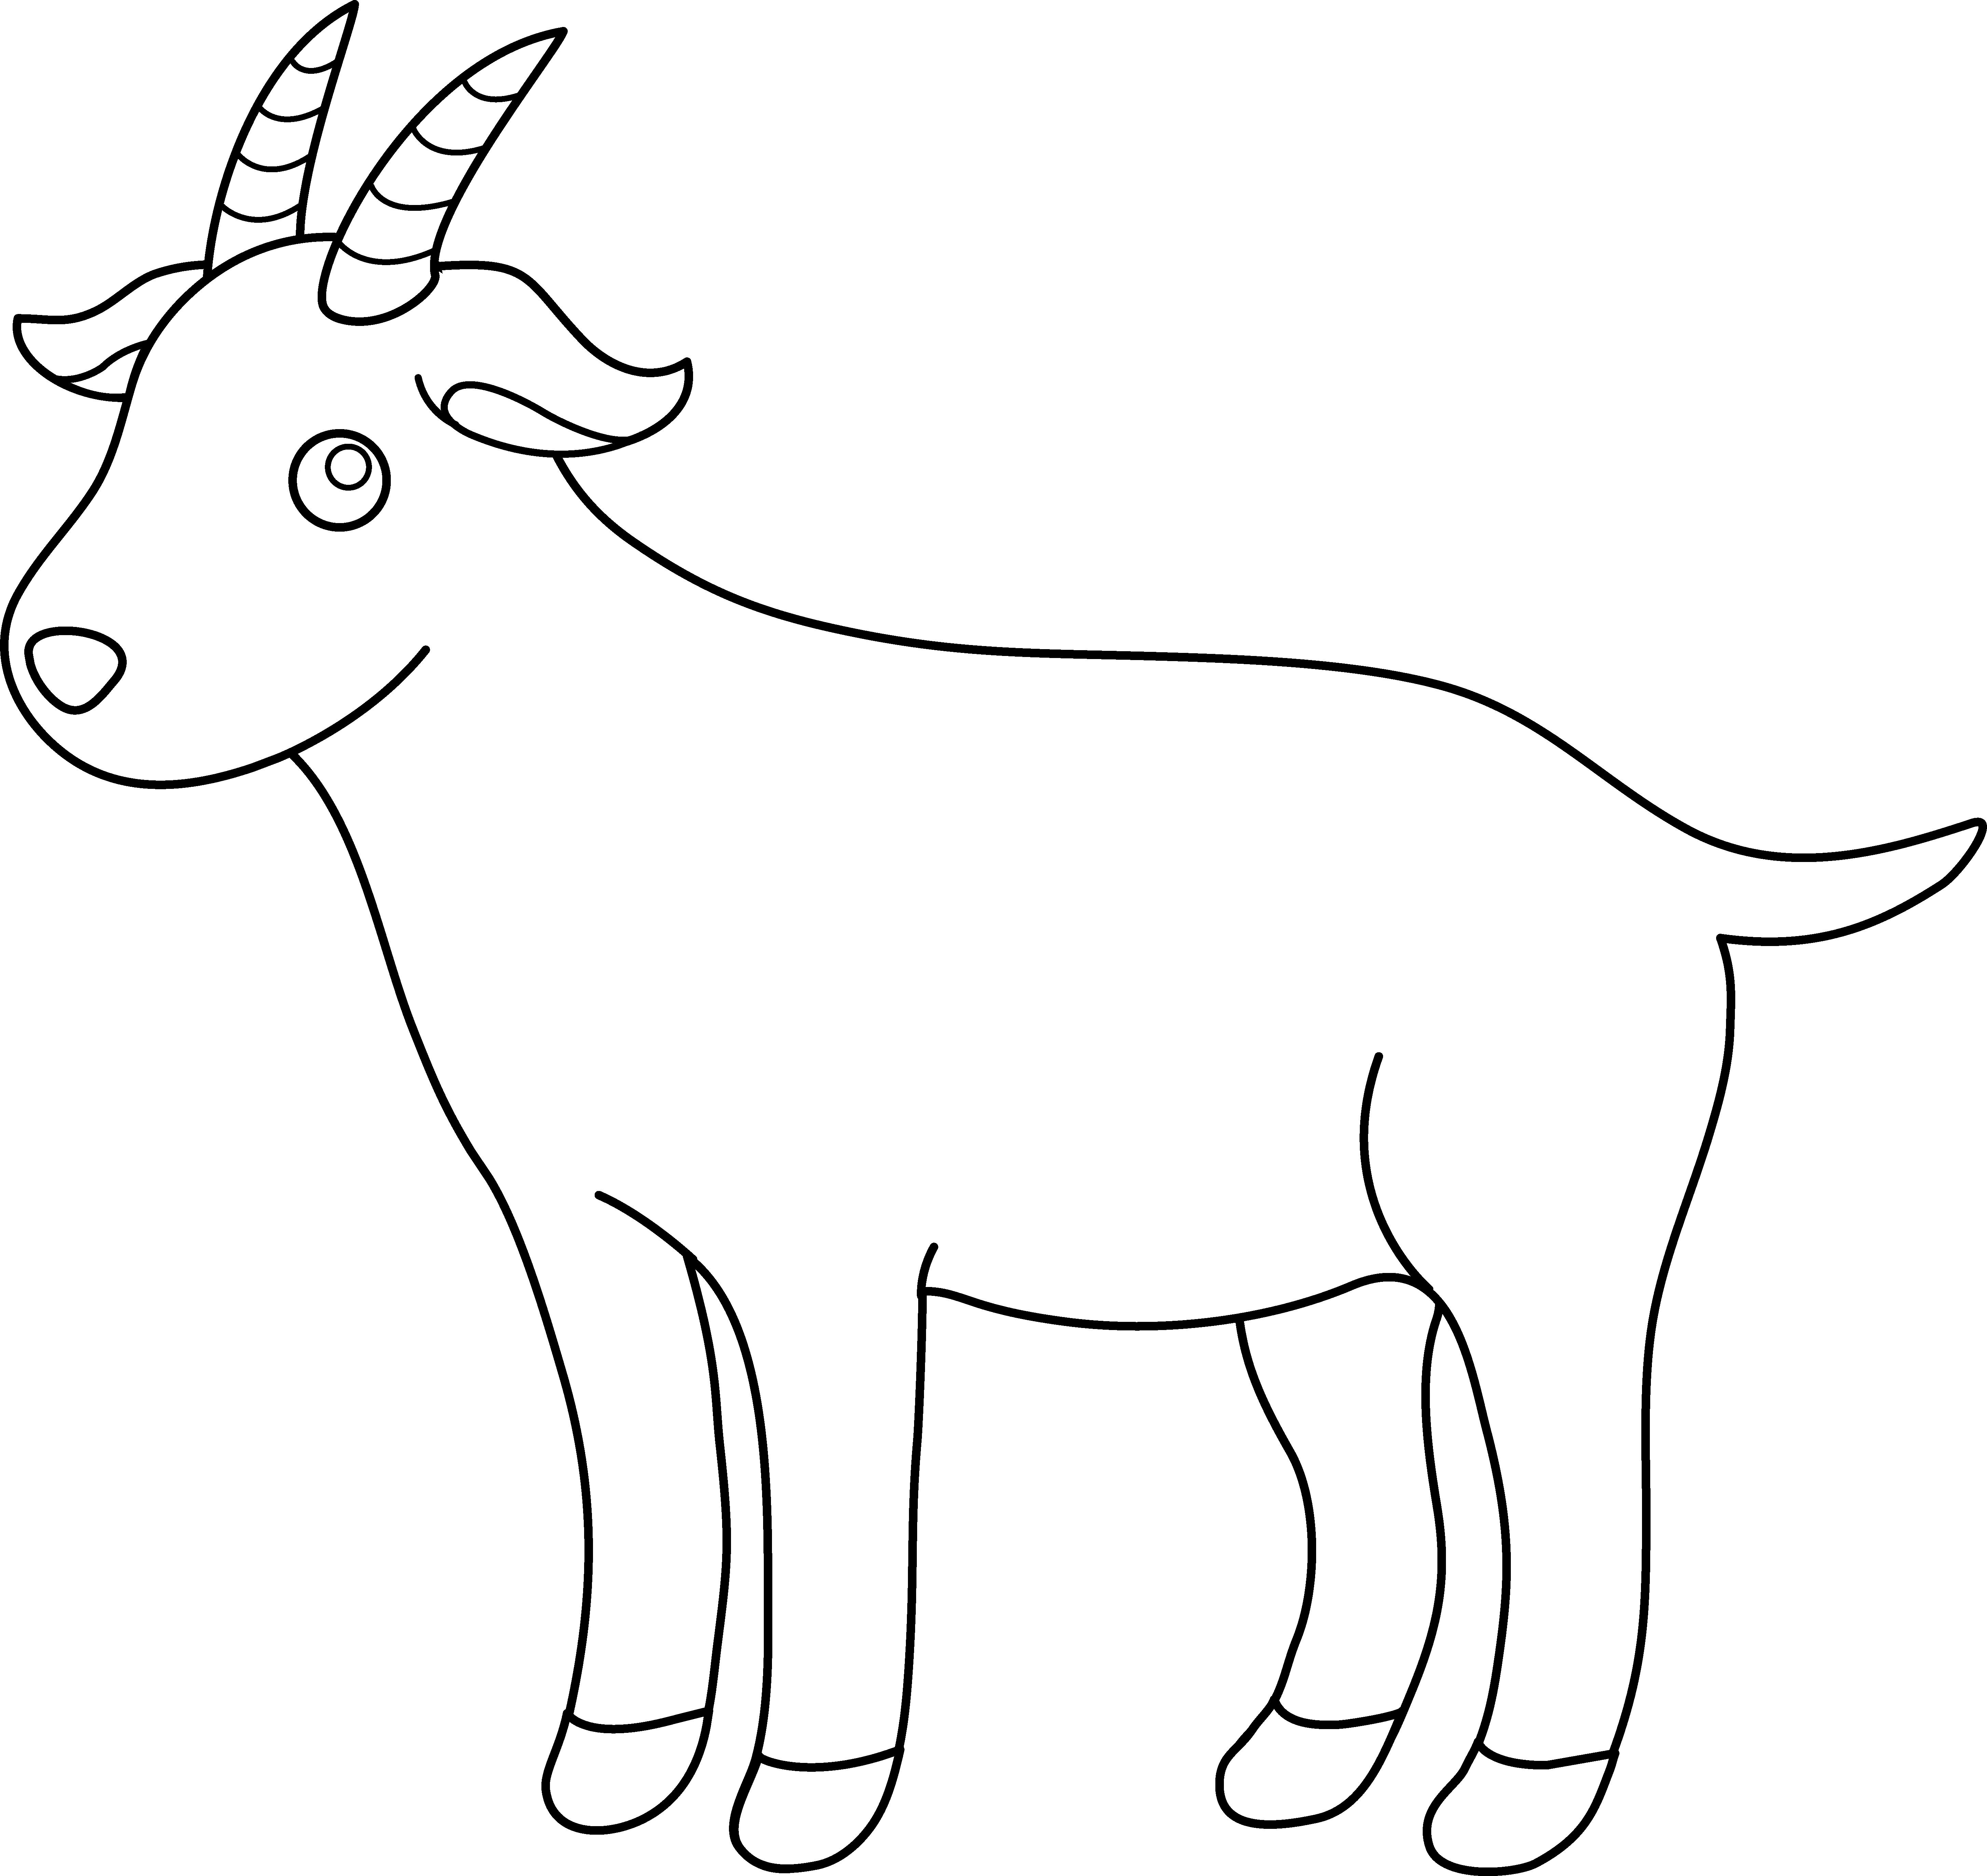 Billy Goat clipart baby goat Images Black Clipart Goat sat%20clipart%20black%20and%20white